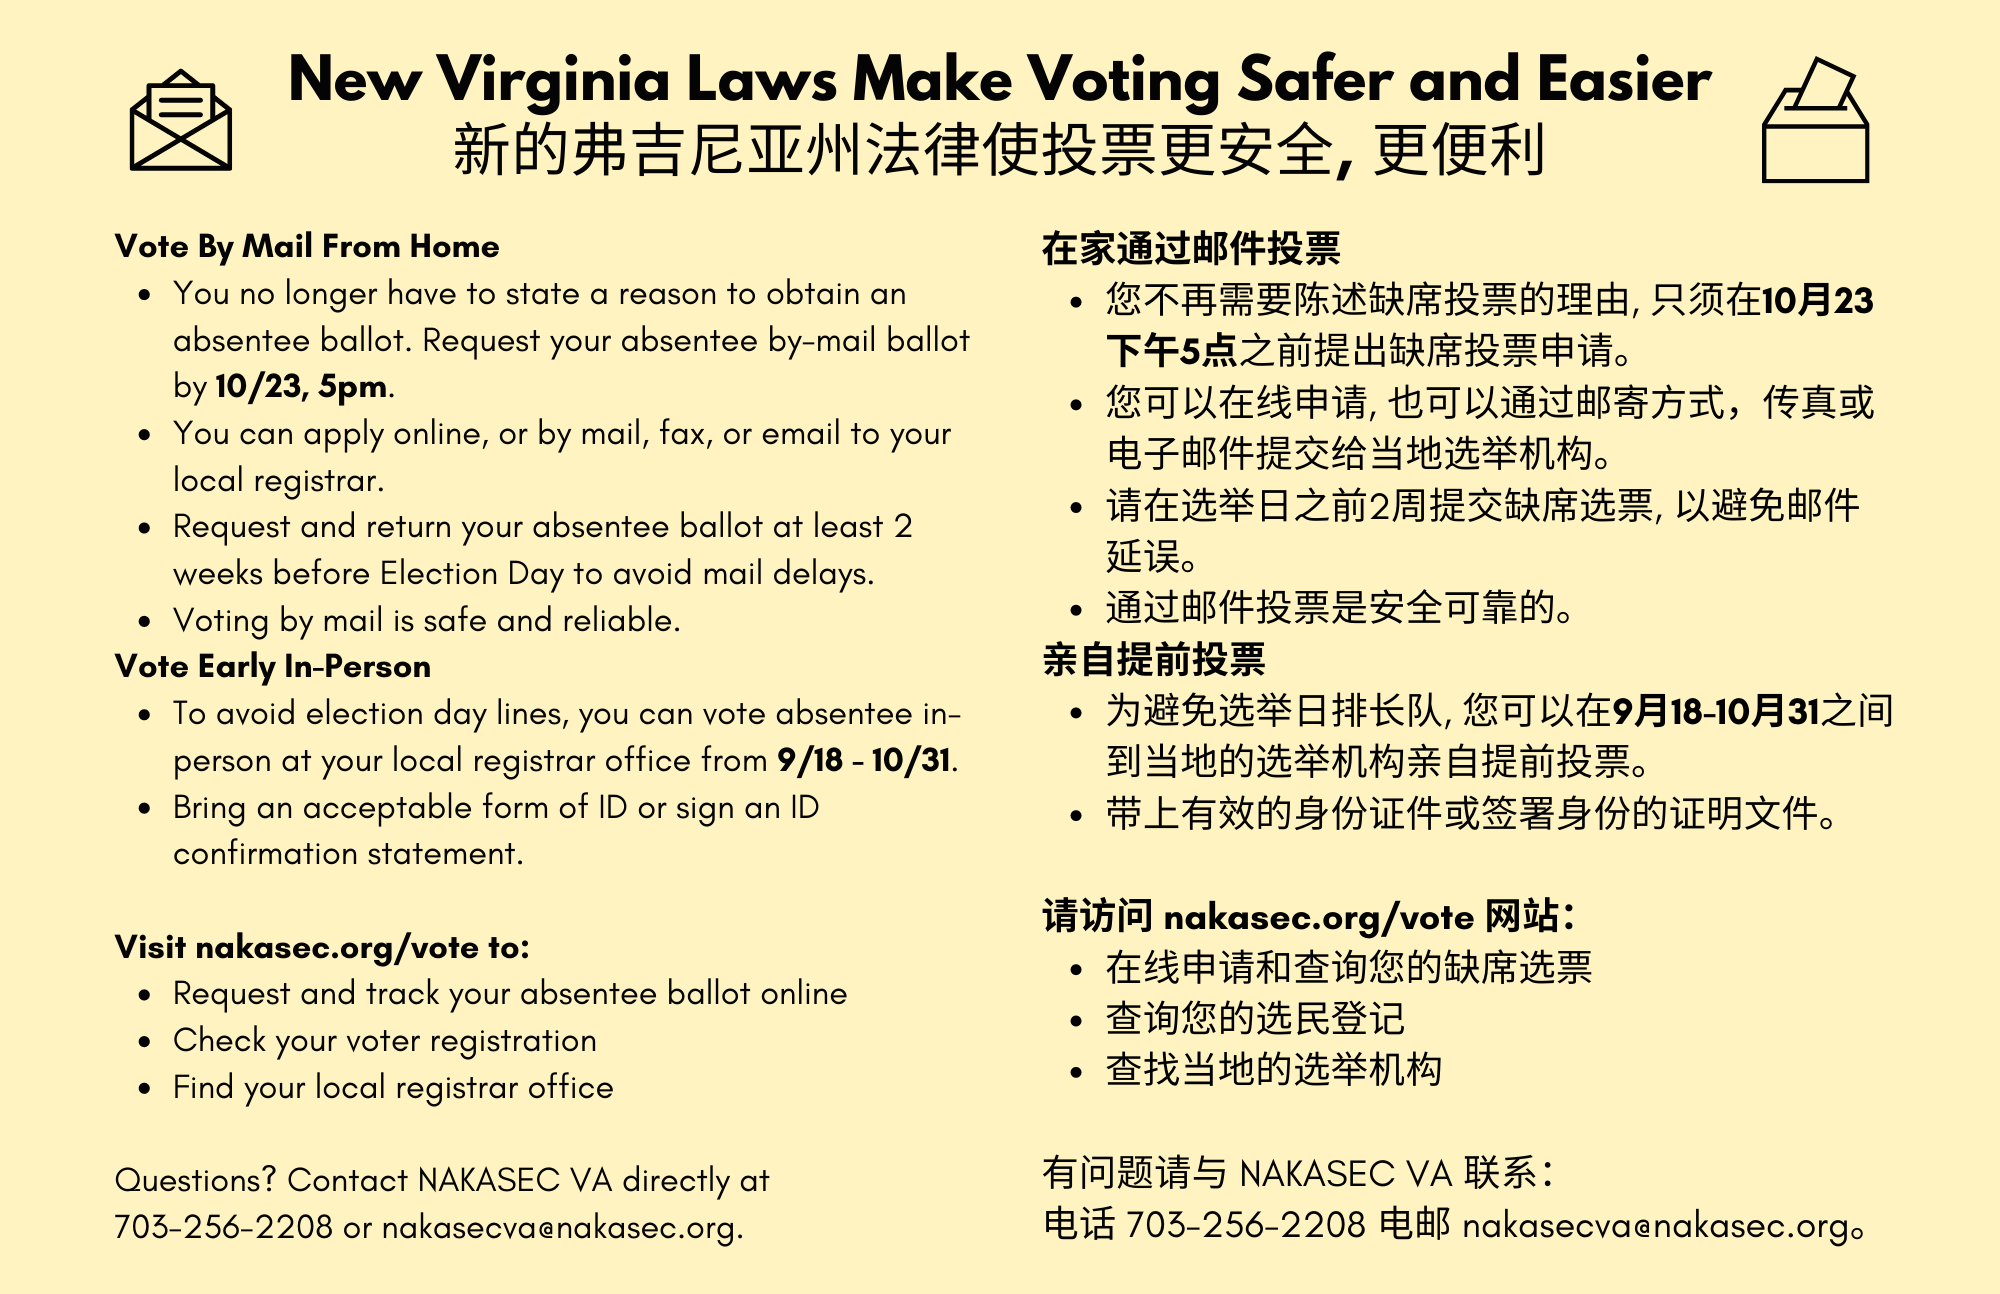 New Virginia Laws Make Voting Safer and Easier; translated to Chinese